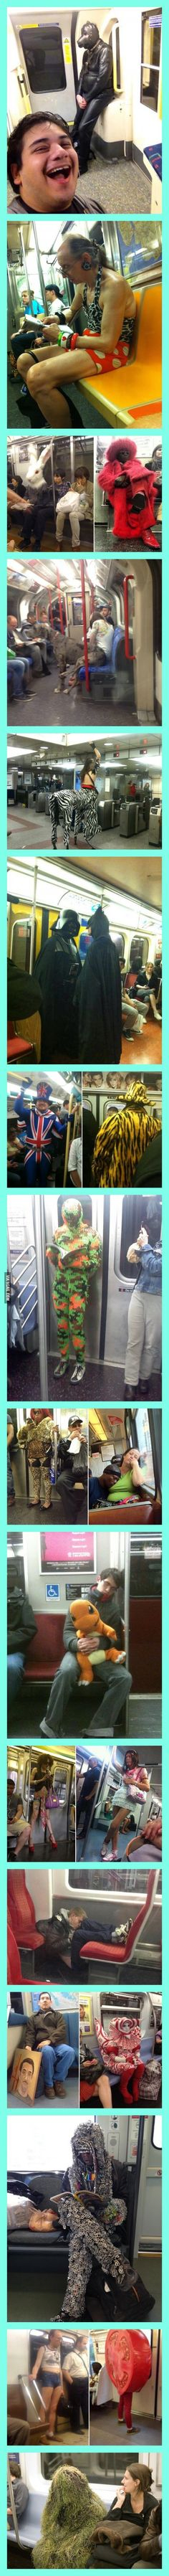 Crazy Stuff Spotted On The Subway